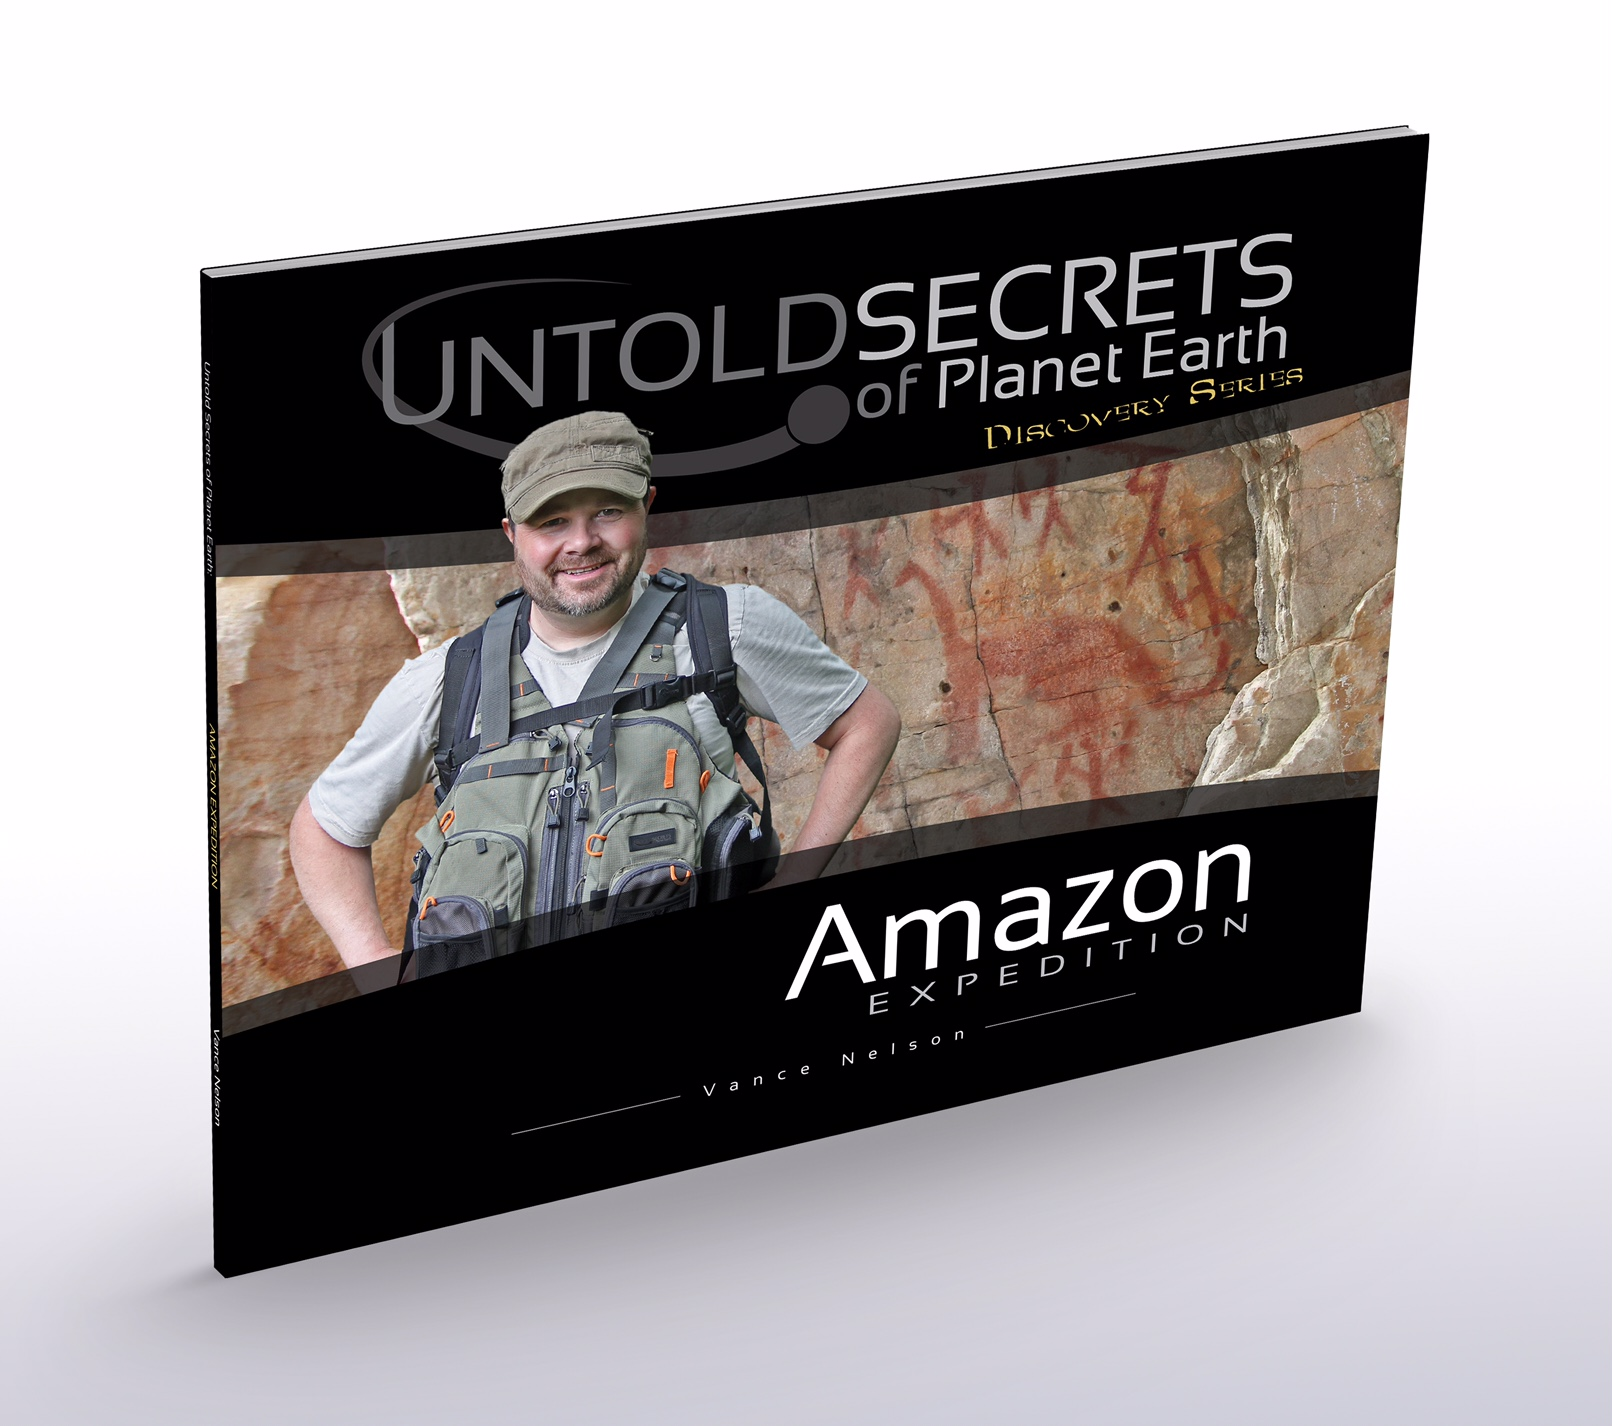 Amazon Expidition - Vance Nelson - Untold Secrets of Planet Earth